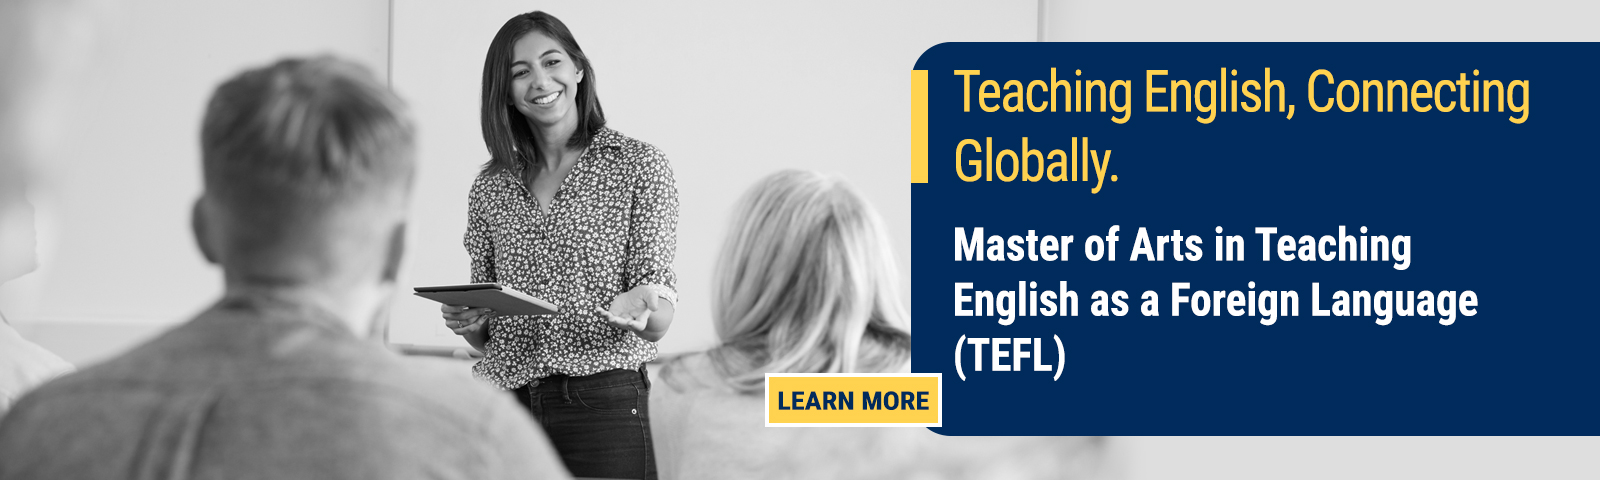 Earn a Master of Arts in TEFL from CIU.